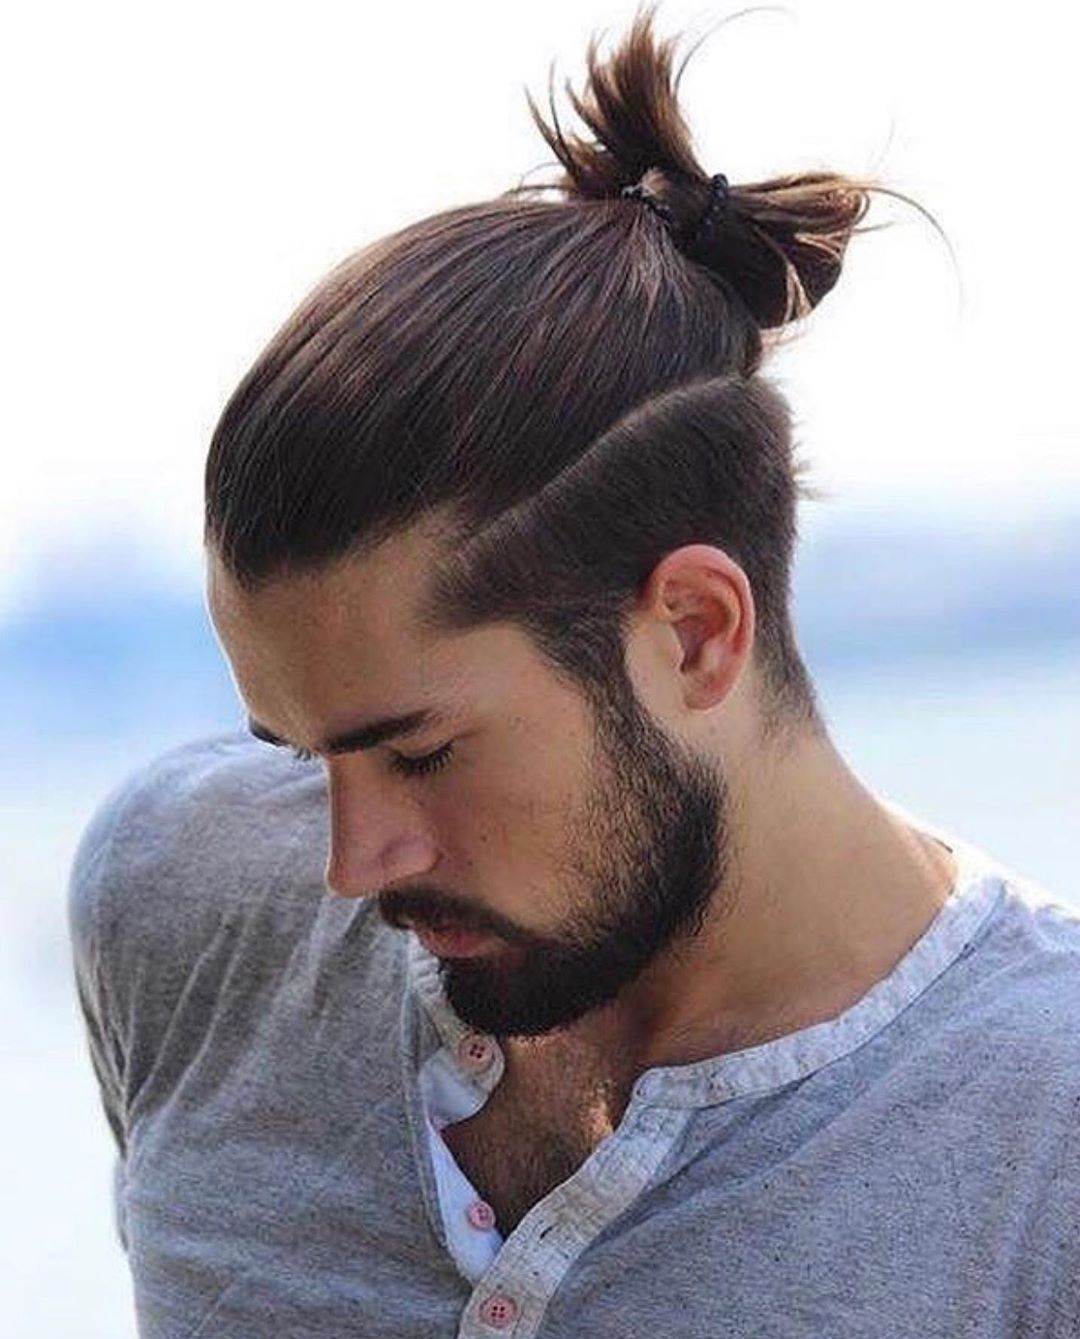 Thoughts On This Hairstyle Cheveux Homme Photo Coiffure Homme Coiffure Homme